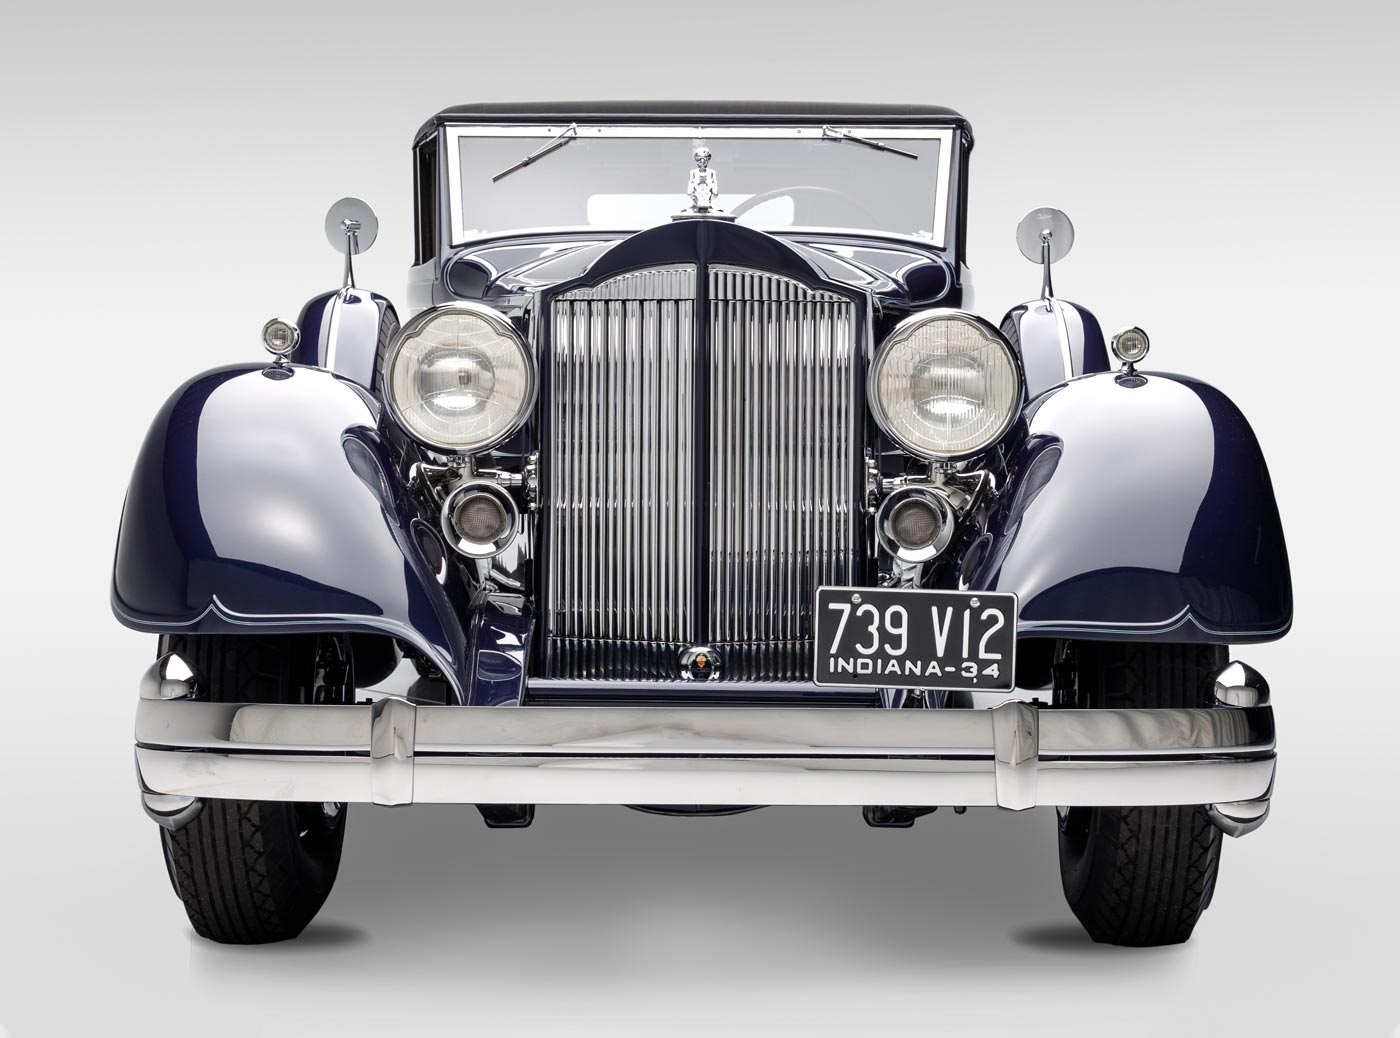 1934 Packard Twelve 1107 Coupe - The JBS Collection